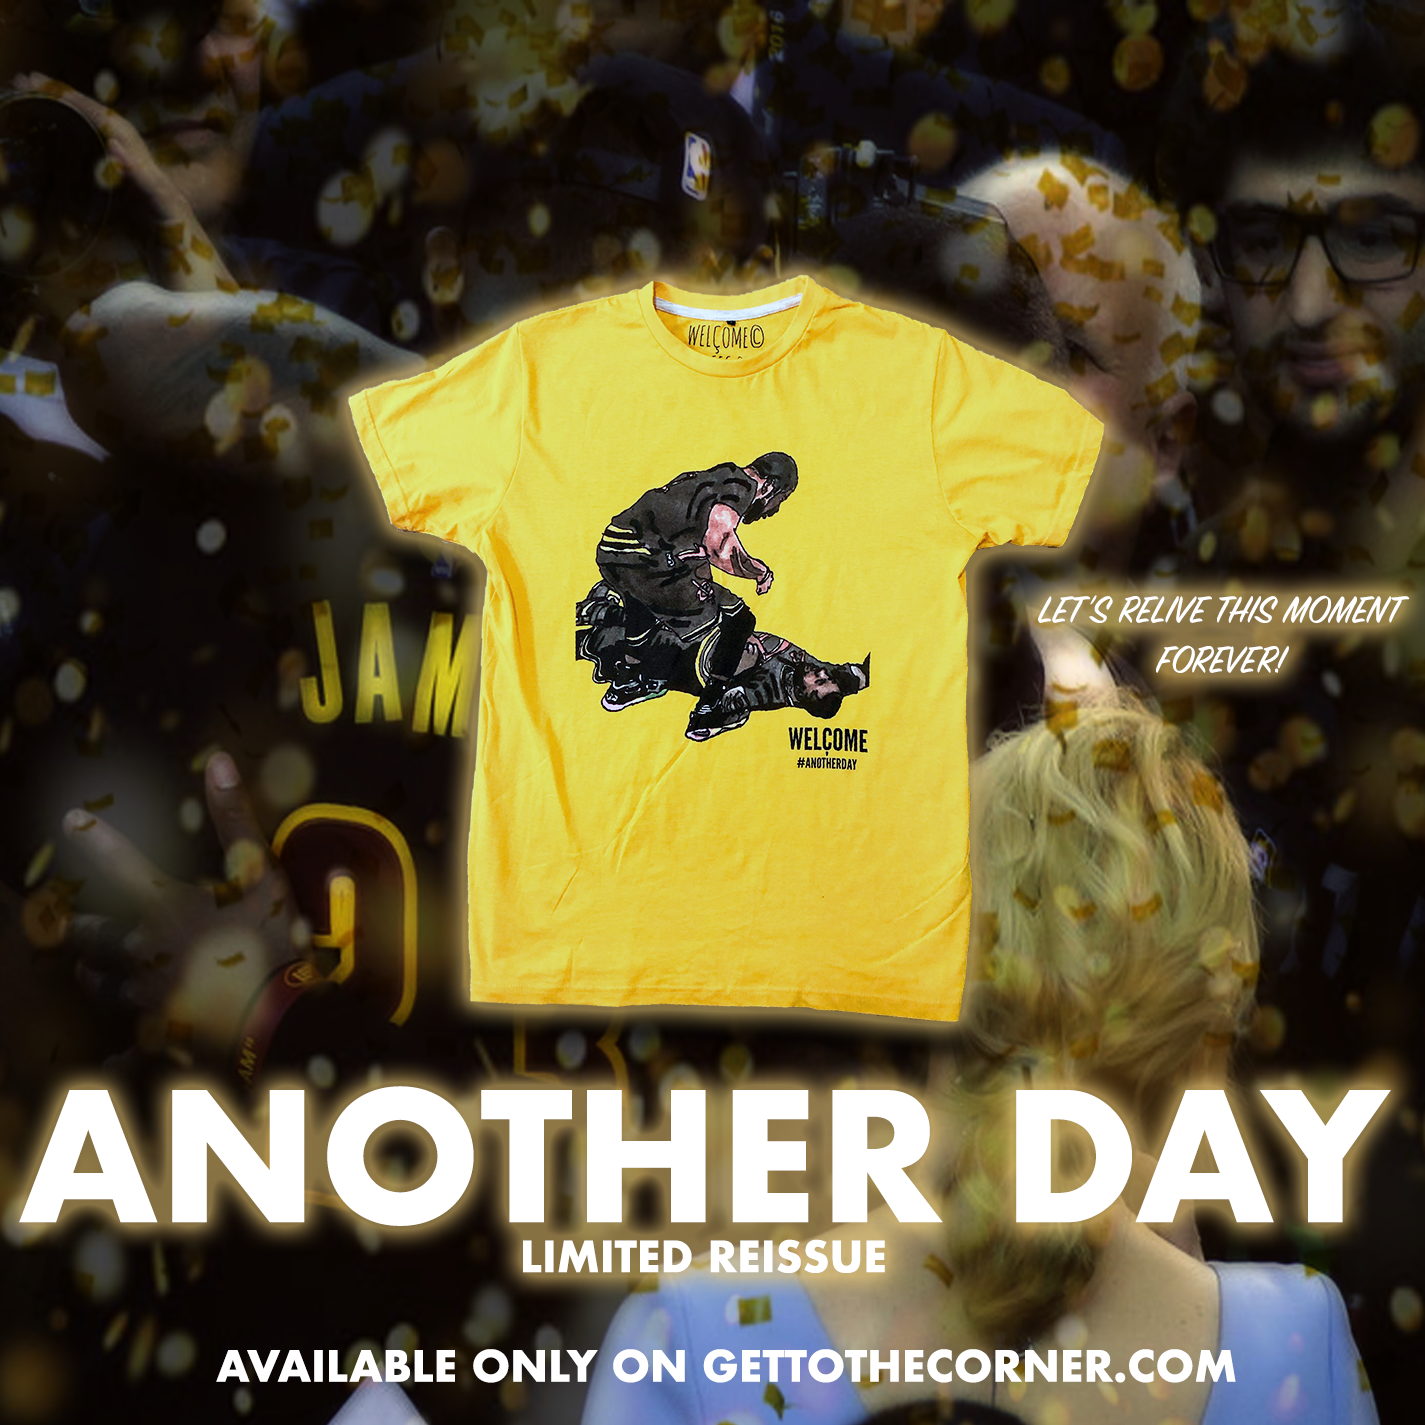 Originally Released 2016. Now Back In Stock for a Limited Time. - On this Date 3 years ago, Lebron, Kyrie, and the Cleveland Cavaliers made history by securing the first championship for the land and Lebron's 3rd. - Forever etched in history, this shirt by WELÇOME©️, helps commemorate the On-court camaraderie created between the Land's two stars. - Hand Drawn Printed On WLCM's signature yellow tee, this shirt will make you stand out like the champion you are. - You May not get that special shot like Kyrie or that Beastly Block like Bron, but you'll wear the Another Day tee knowing you're a star w/ a Champion Style.  SHOP: gettothecorner.com